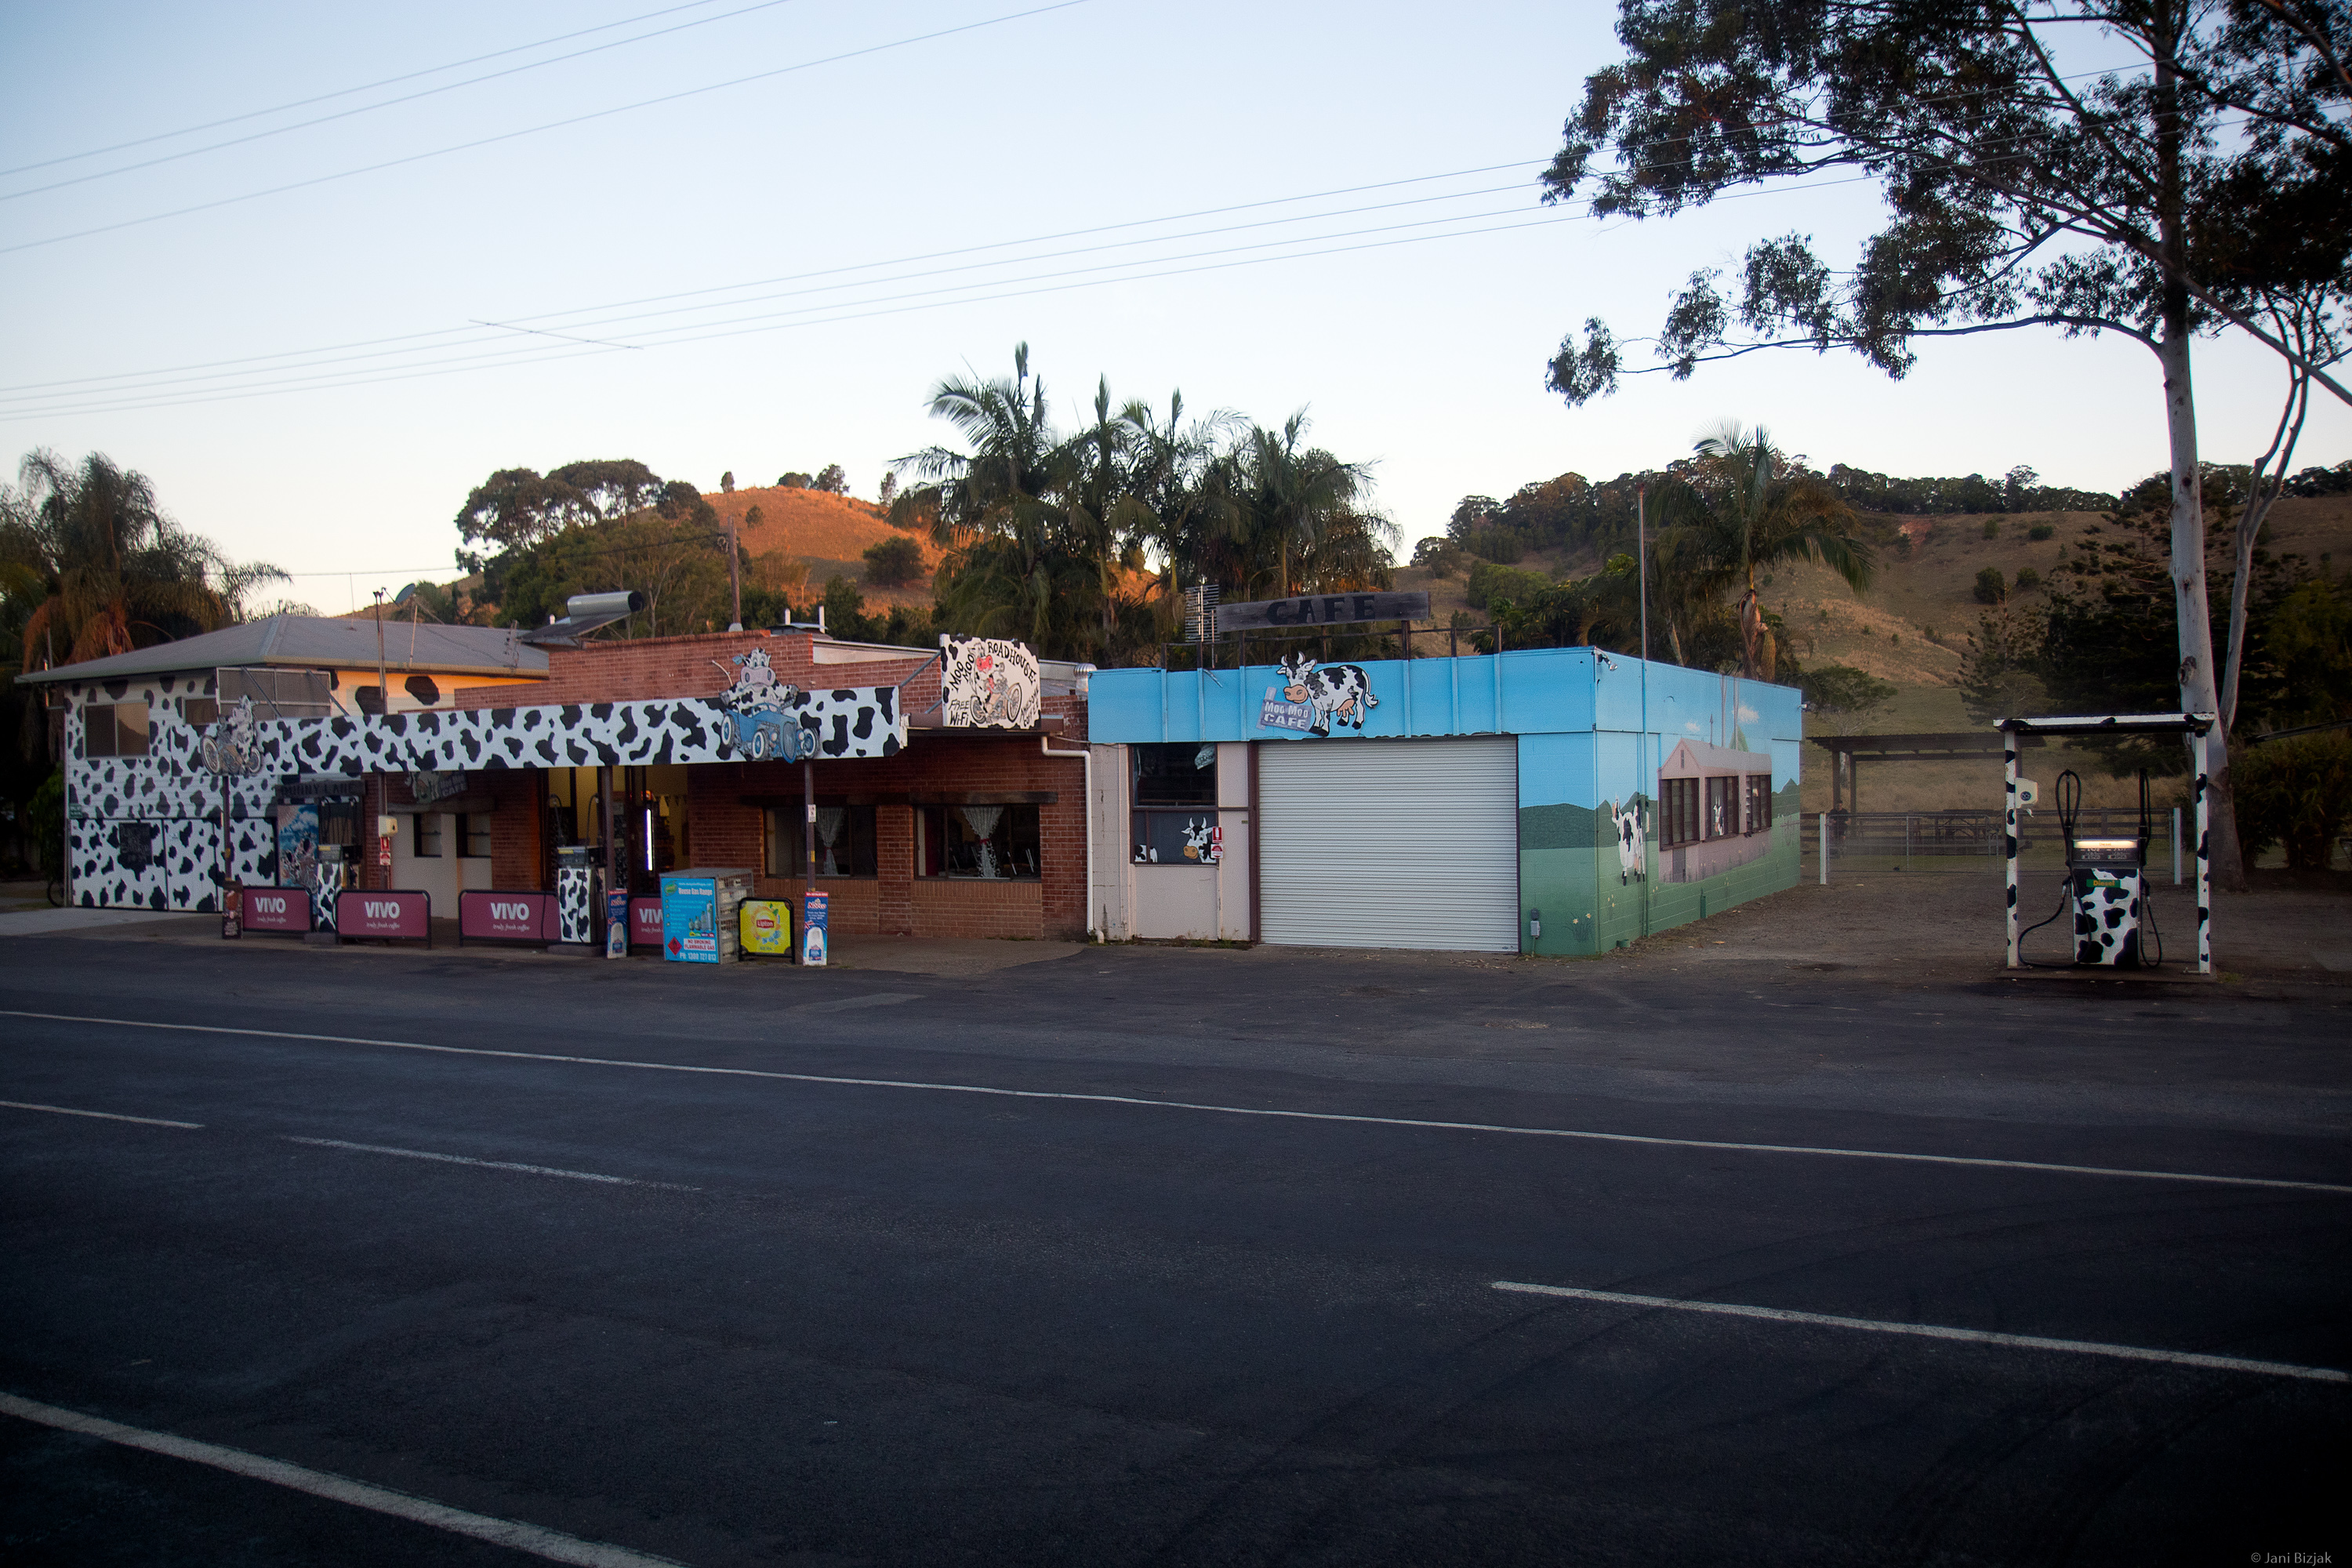 At least we had an opportunity to see this cow gas station on the way.